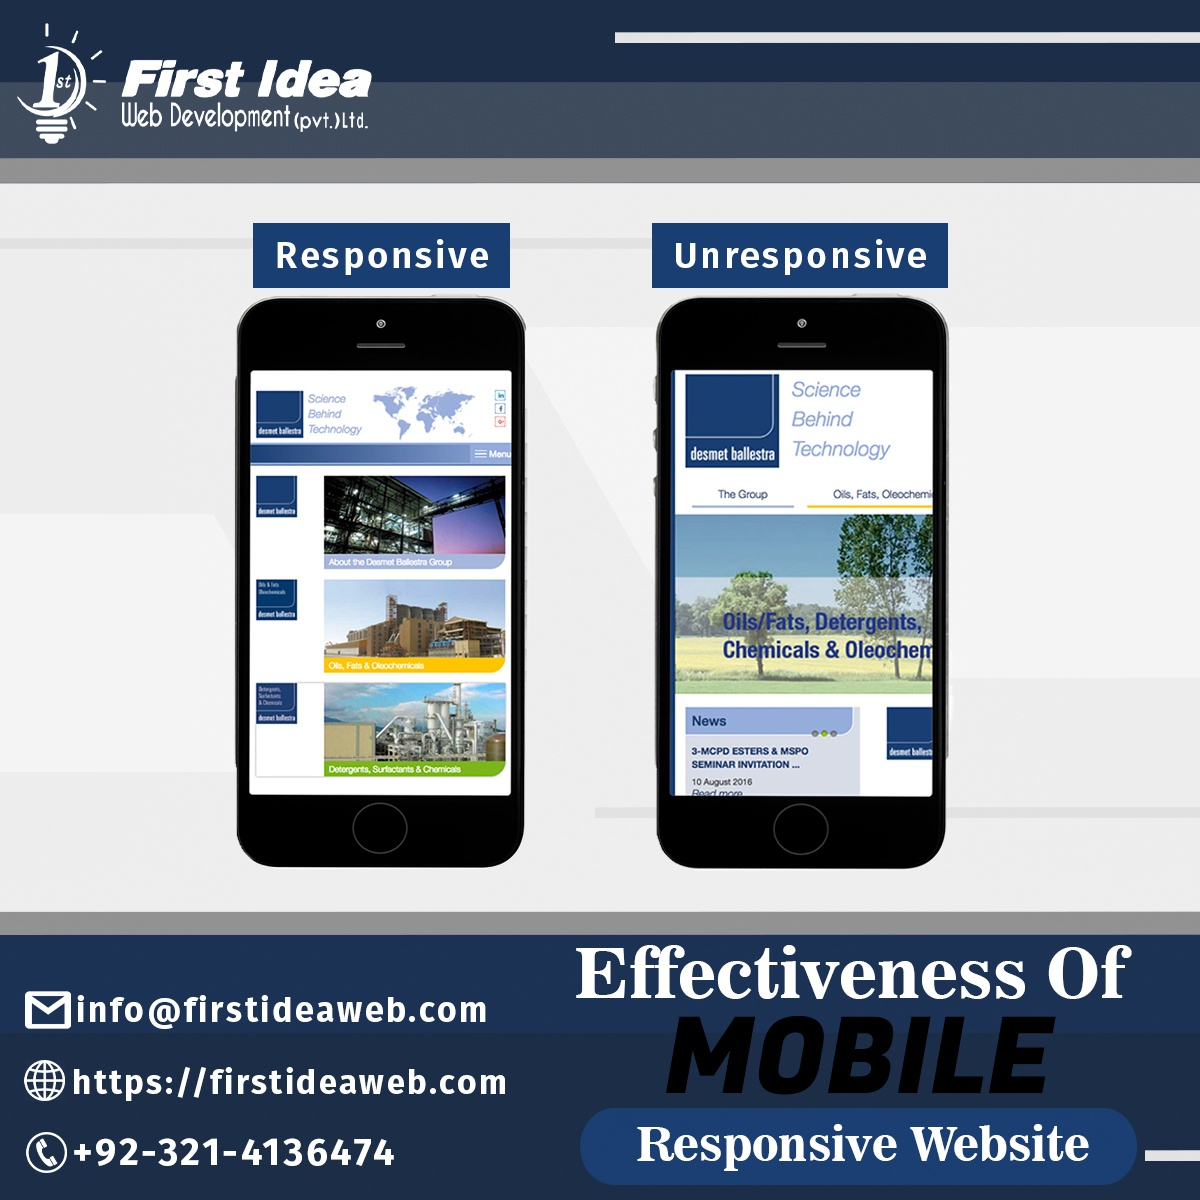 mobile website design, mobile responsive website, mobile-friendly website design, responsive website checker